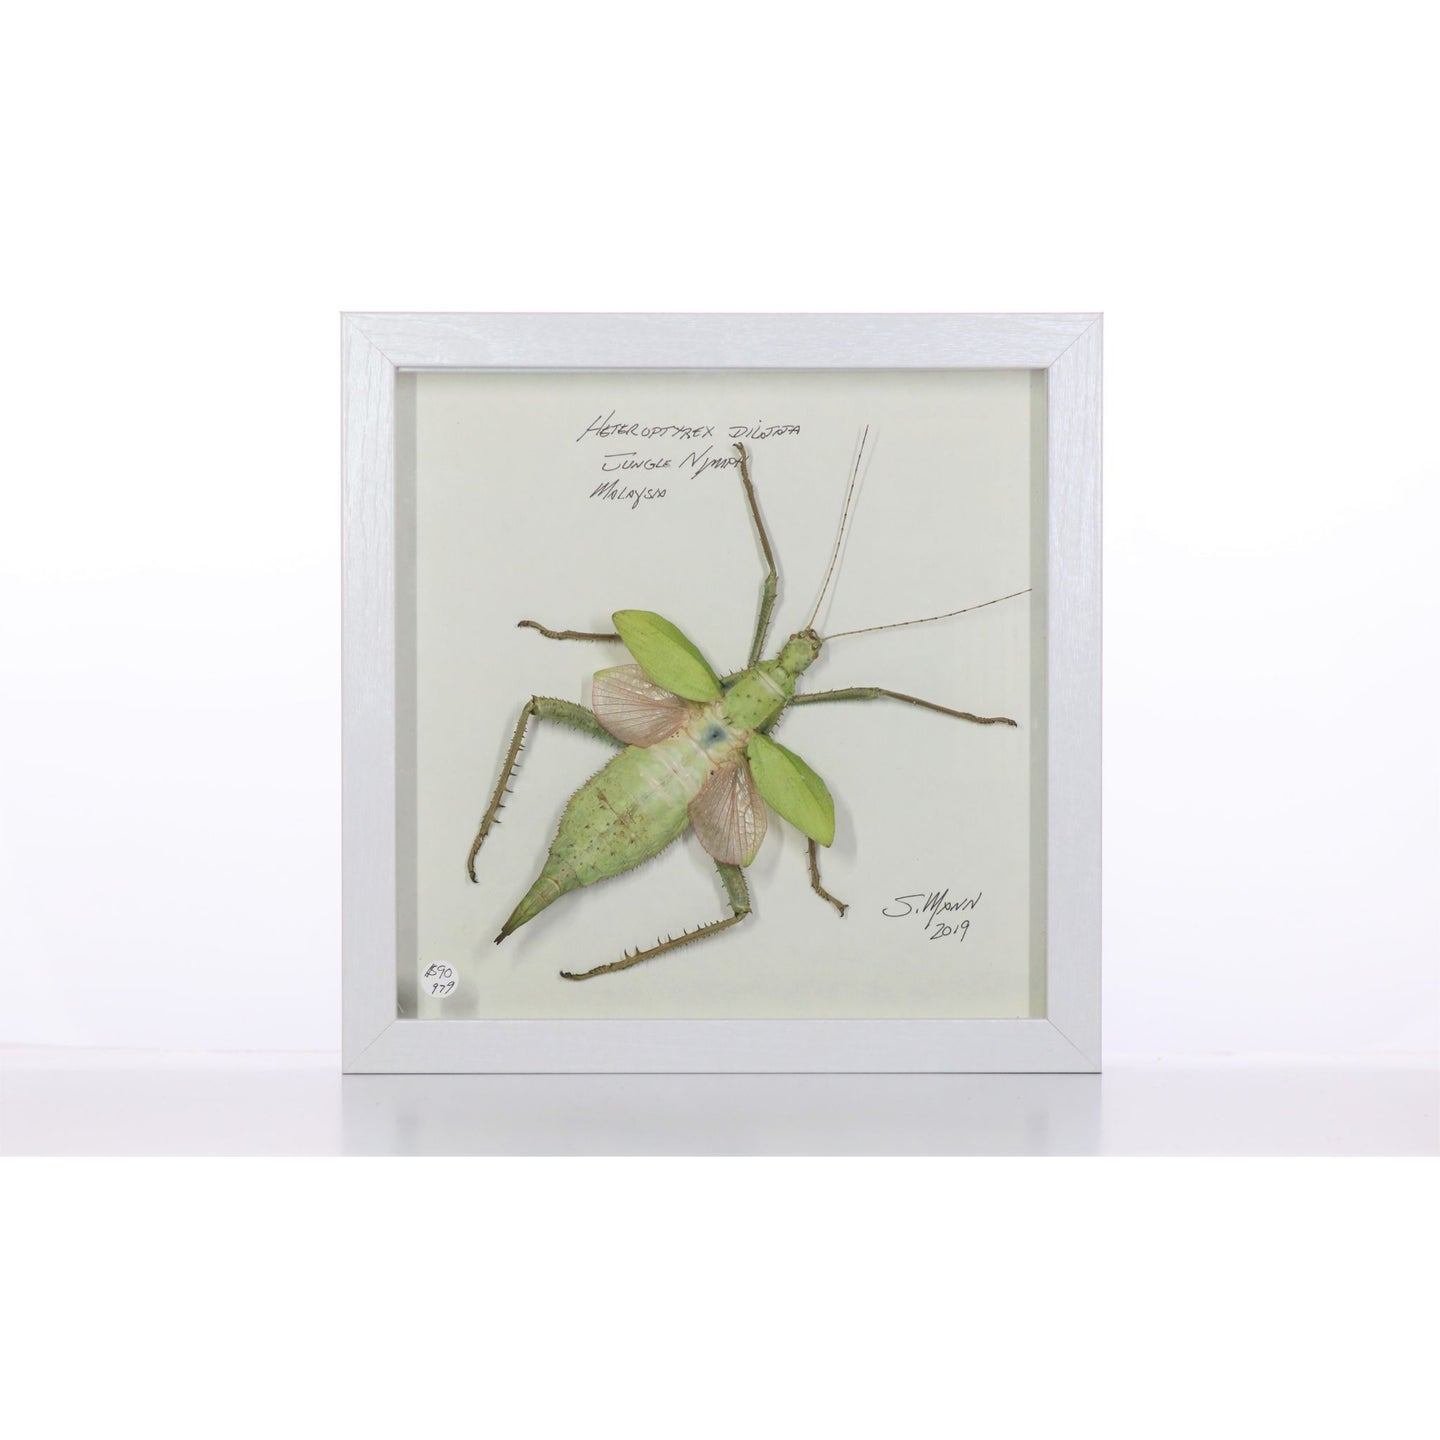 Jungle Nymph 9x9 White #979 Framed Art - Insecta Etcetera